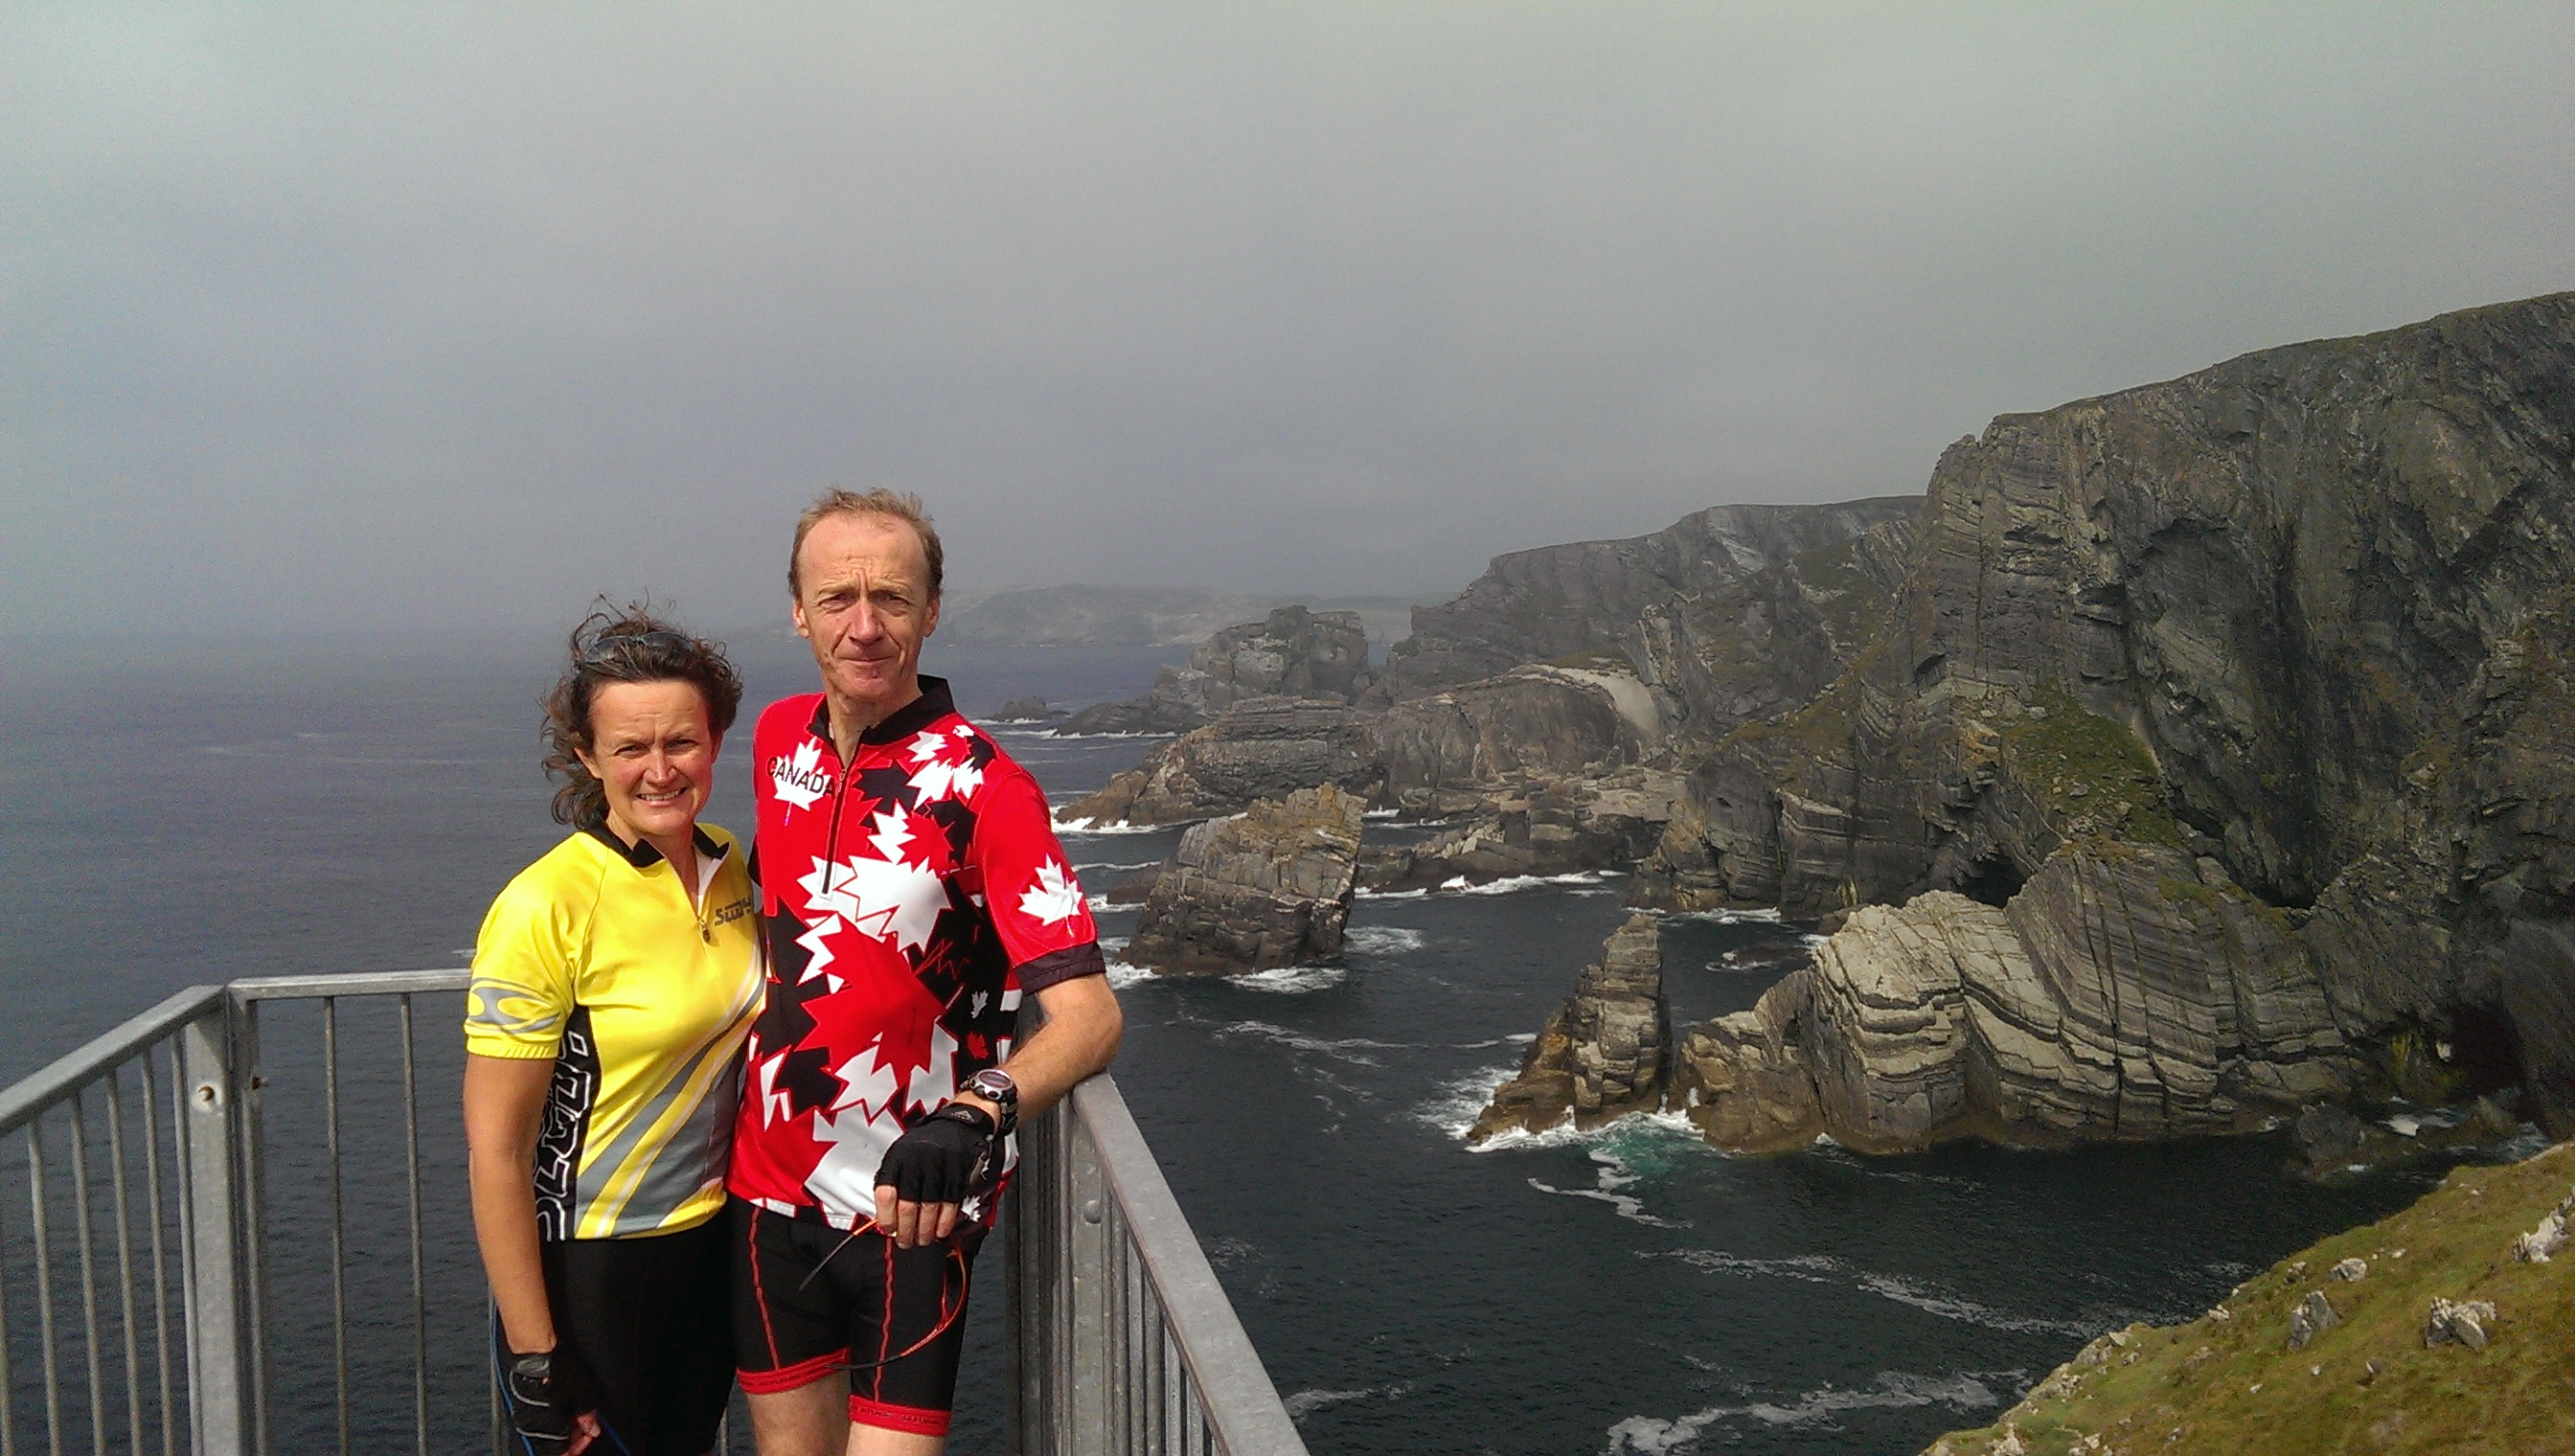 Mizen Head - All set for the start of another end-to-end adventure